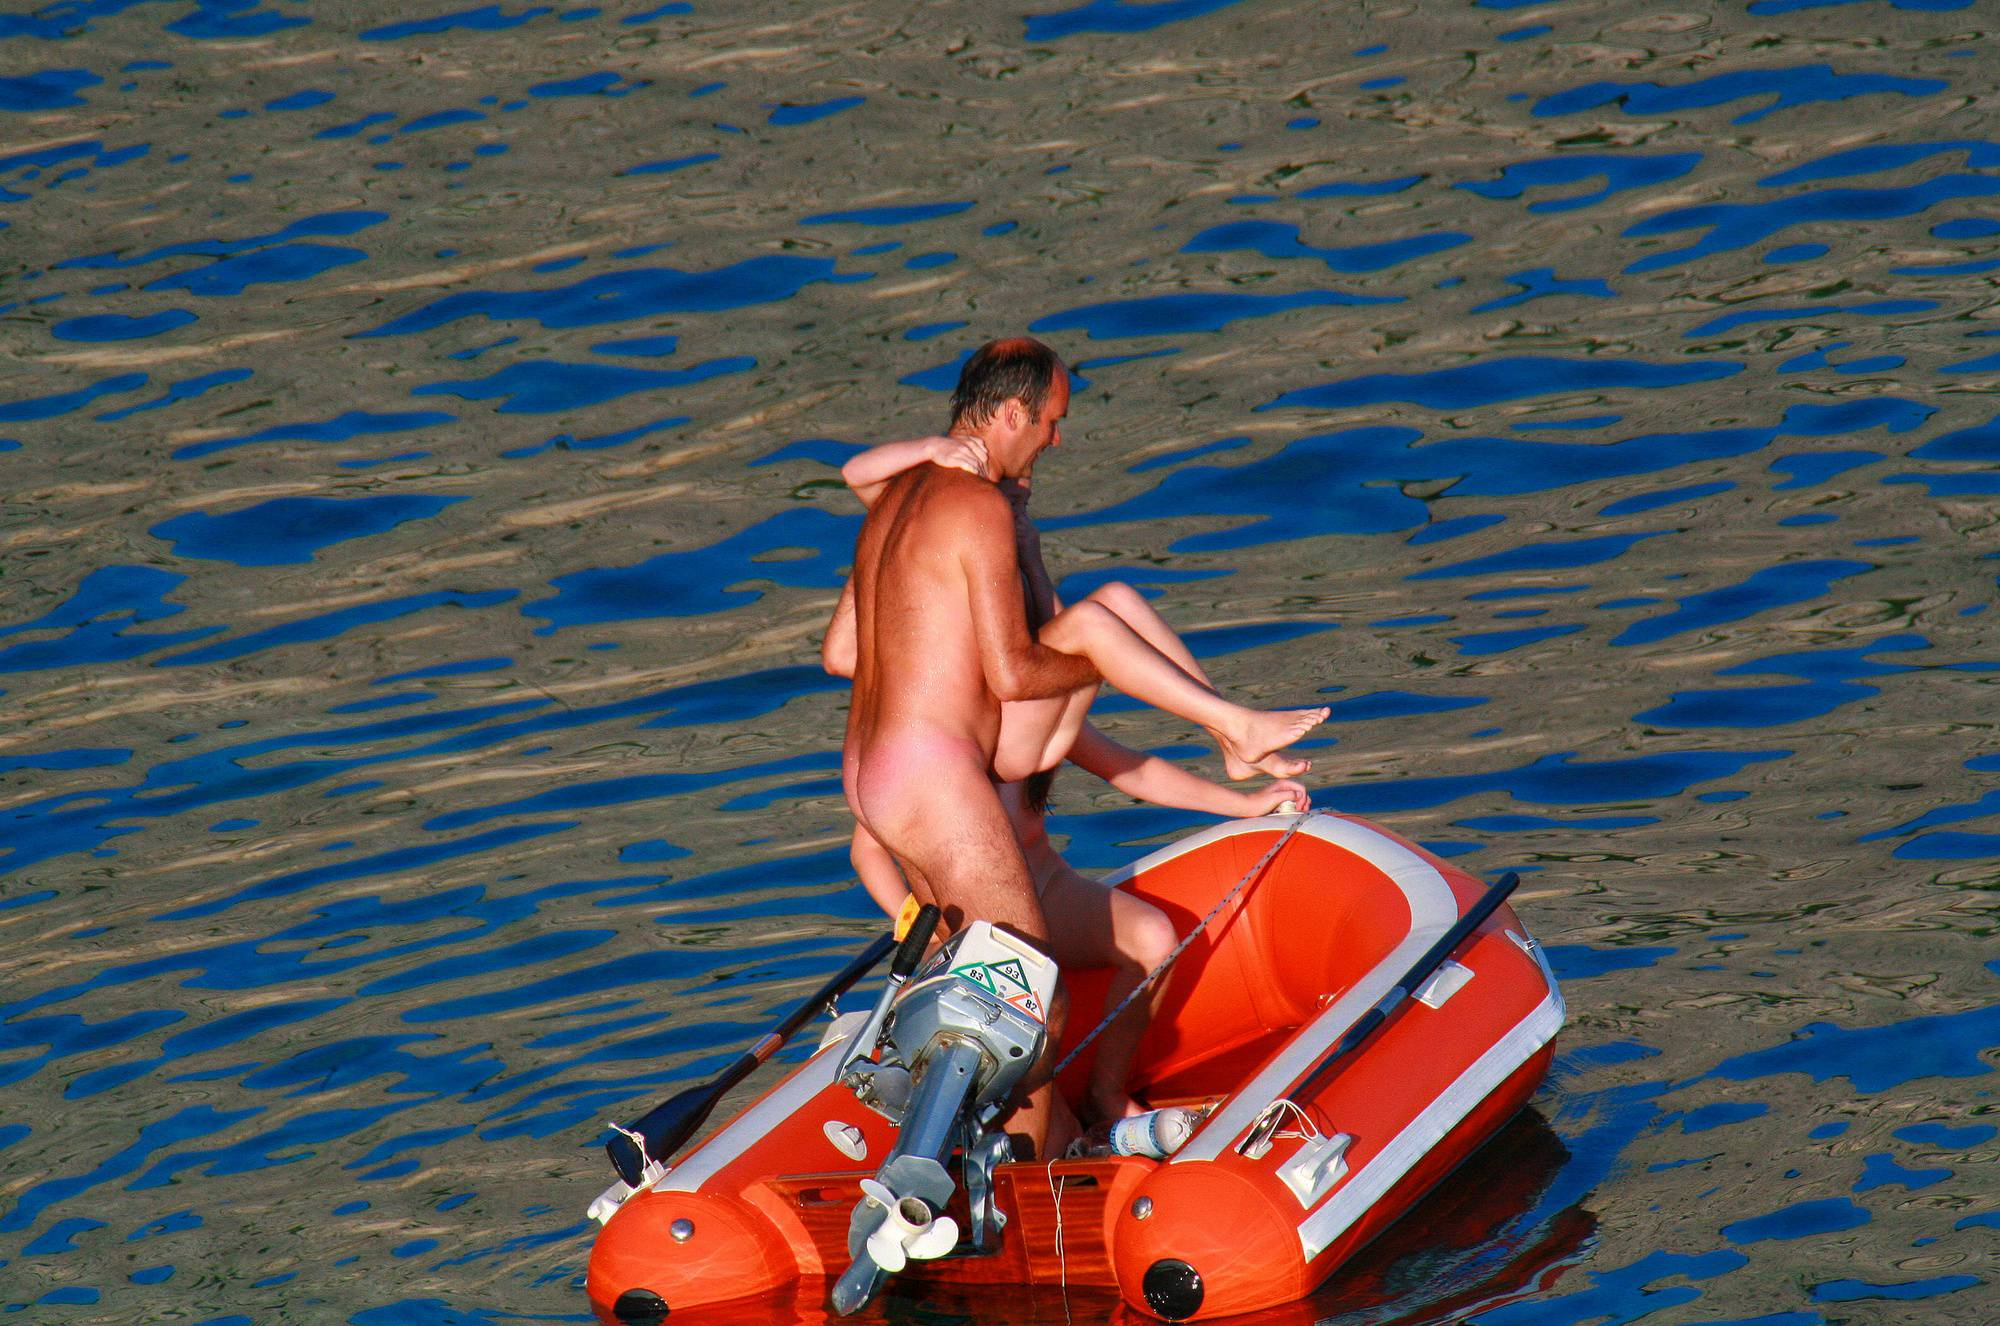 Nudist Pictures Uka FKK In-Water Boating - 1